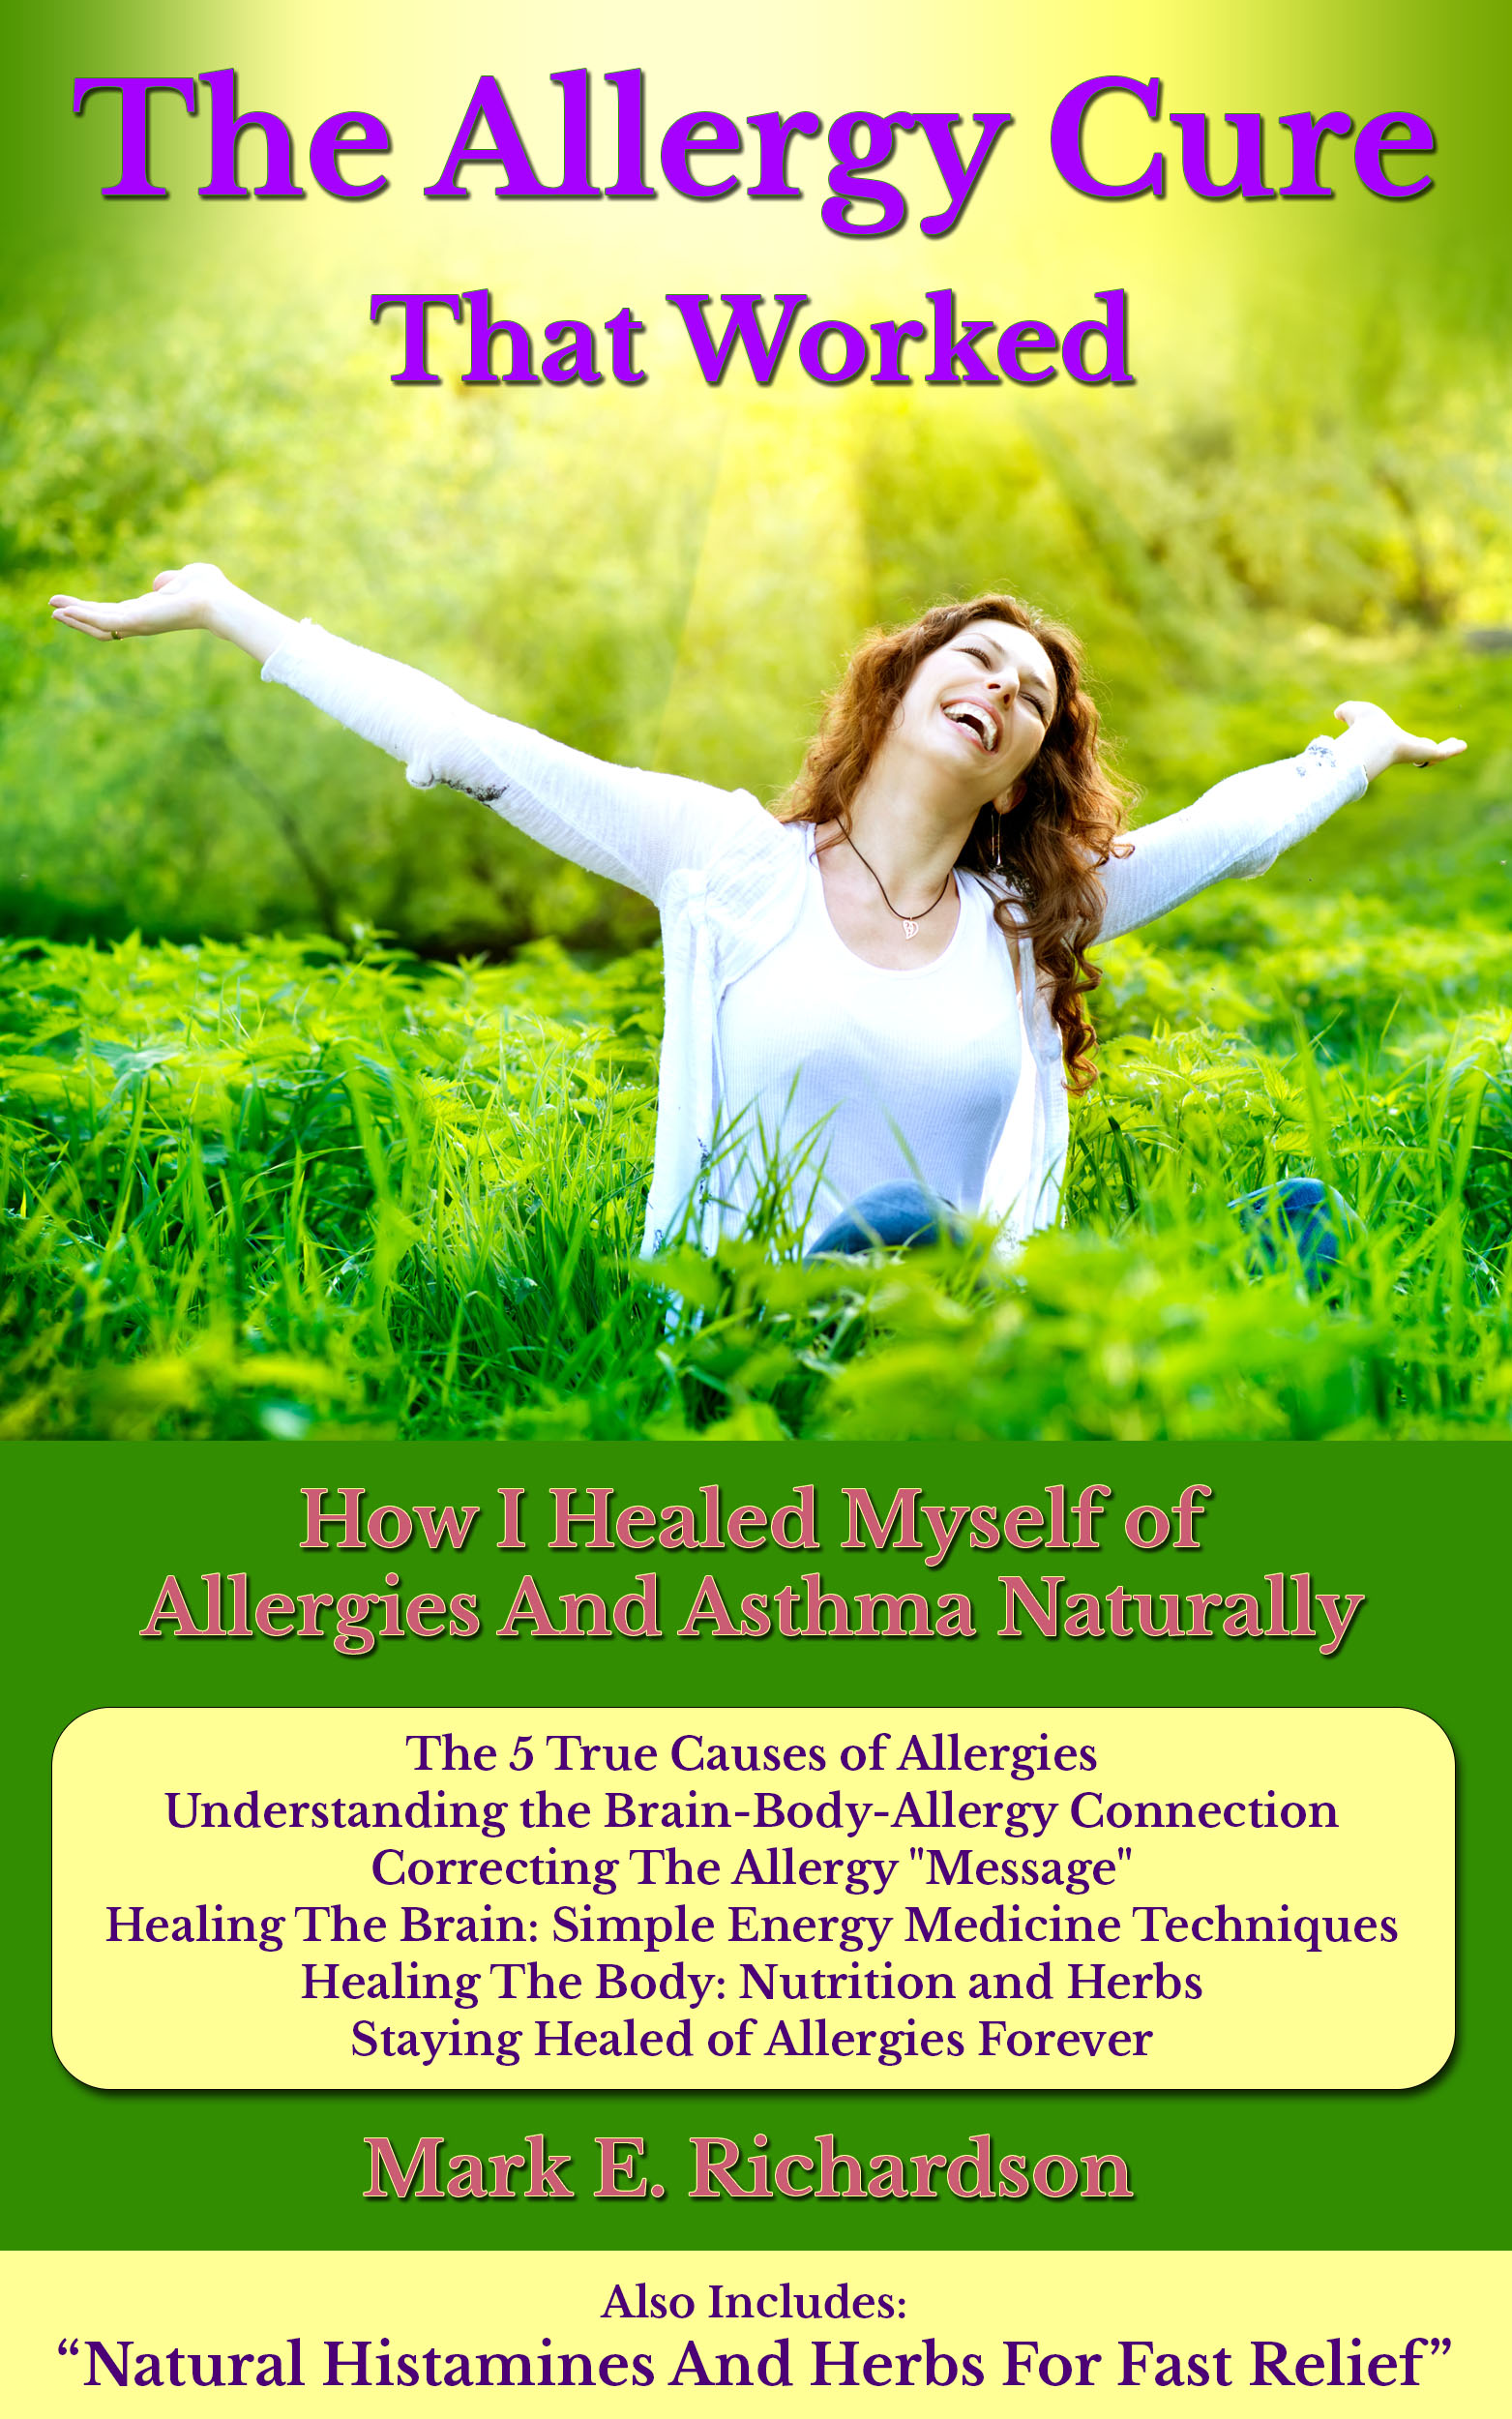 The Allergy Cure That Worked, an Ebook by Mark Richardson